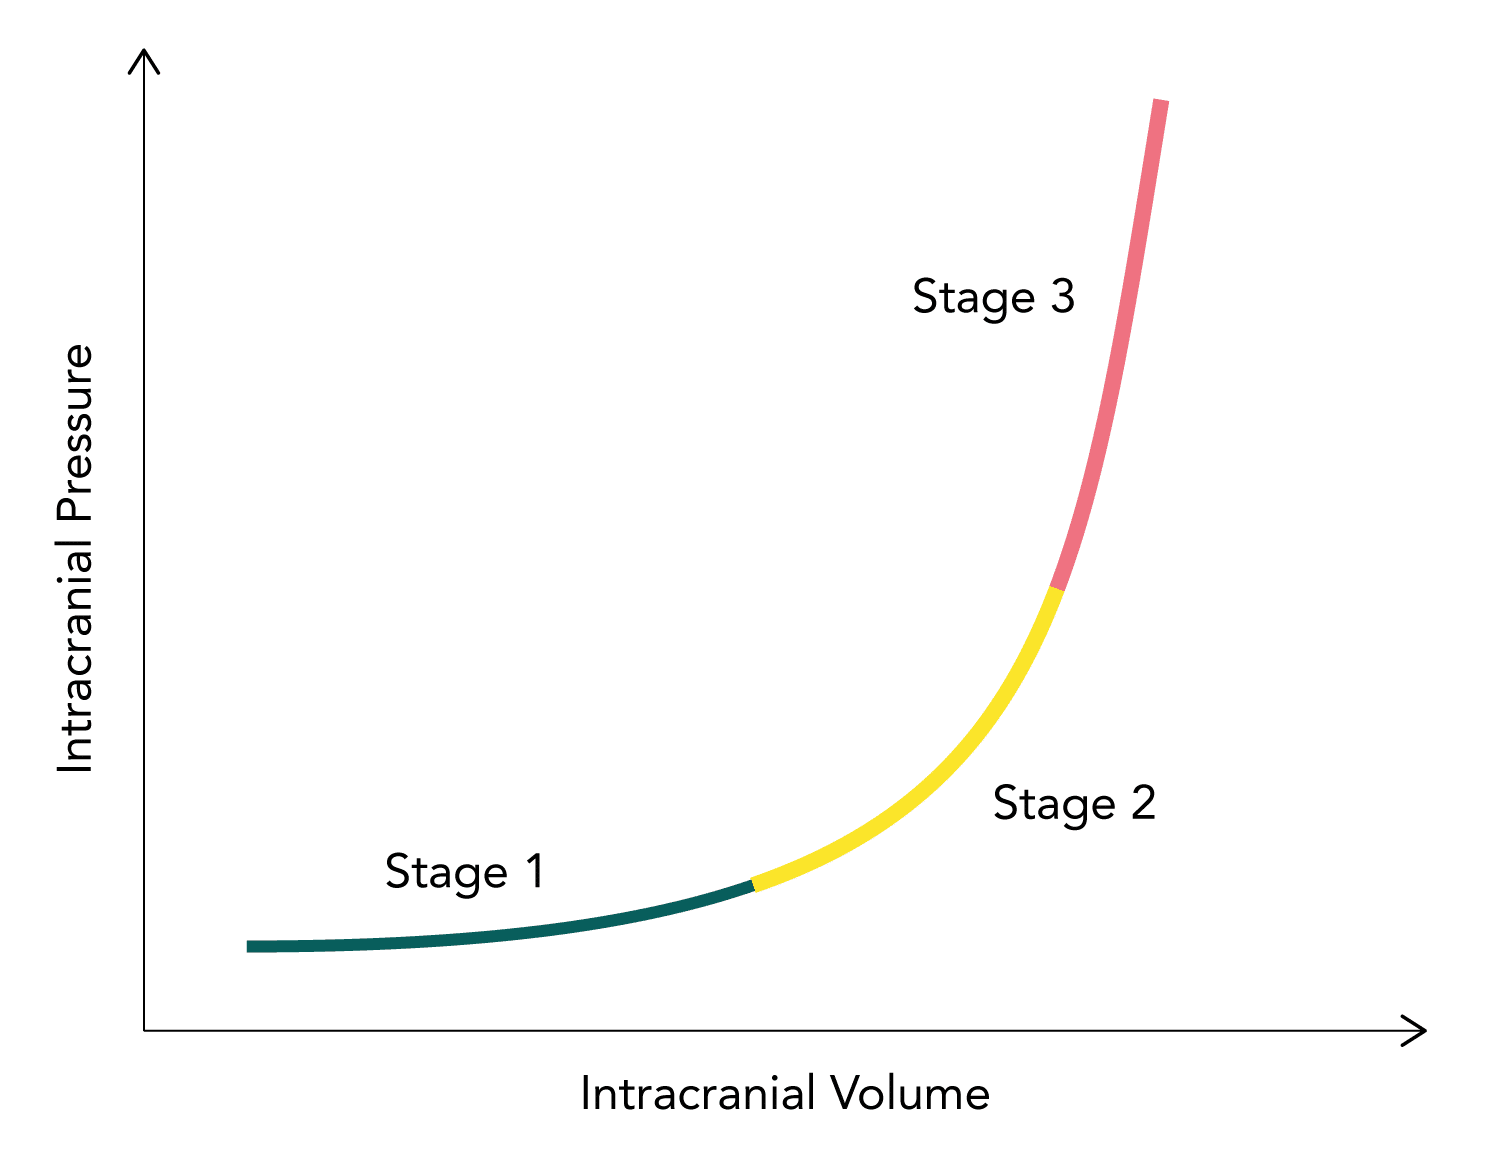 Intracranial compliance curve demonstrating the relationship between intracranial volume and intracranial pressure (ICP)